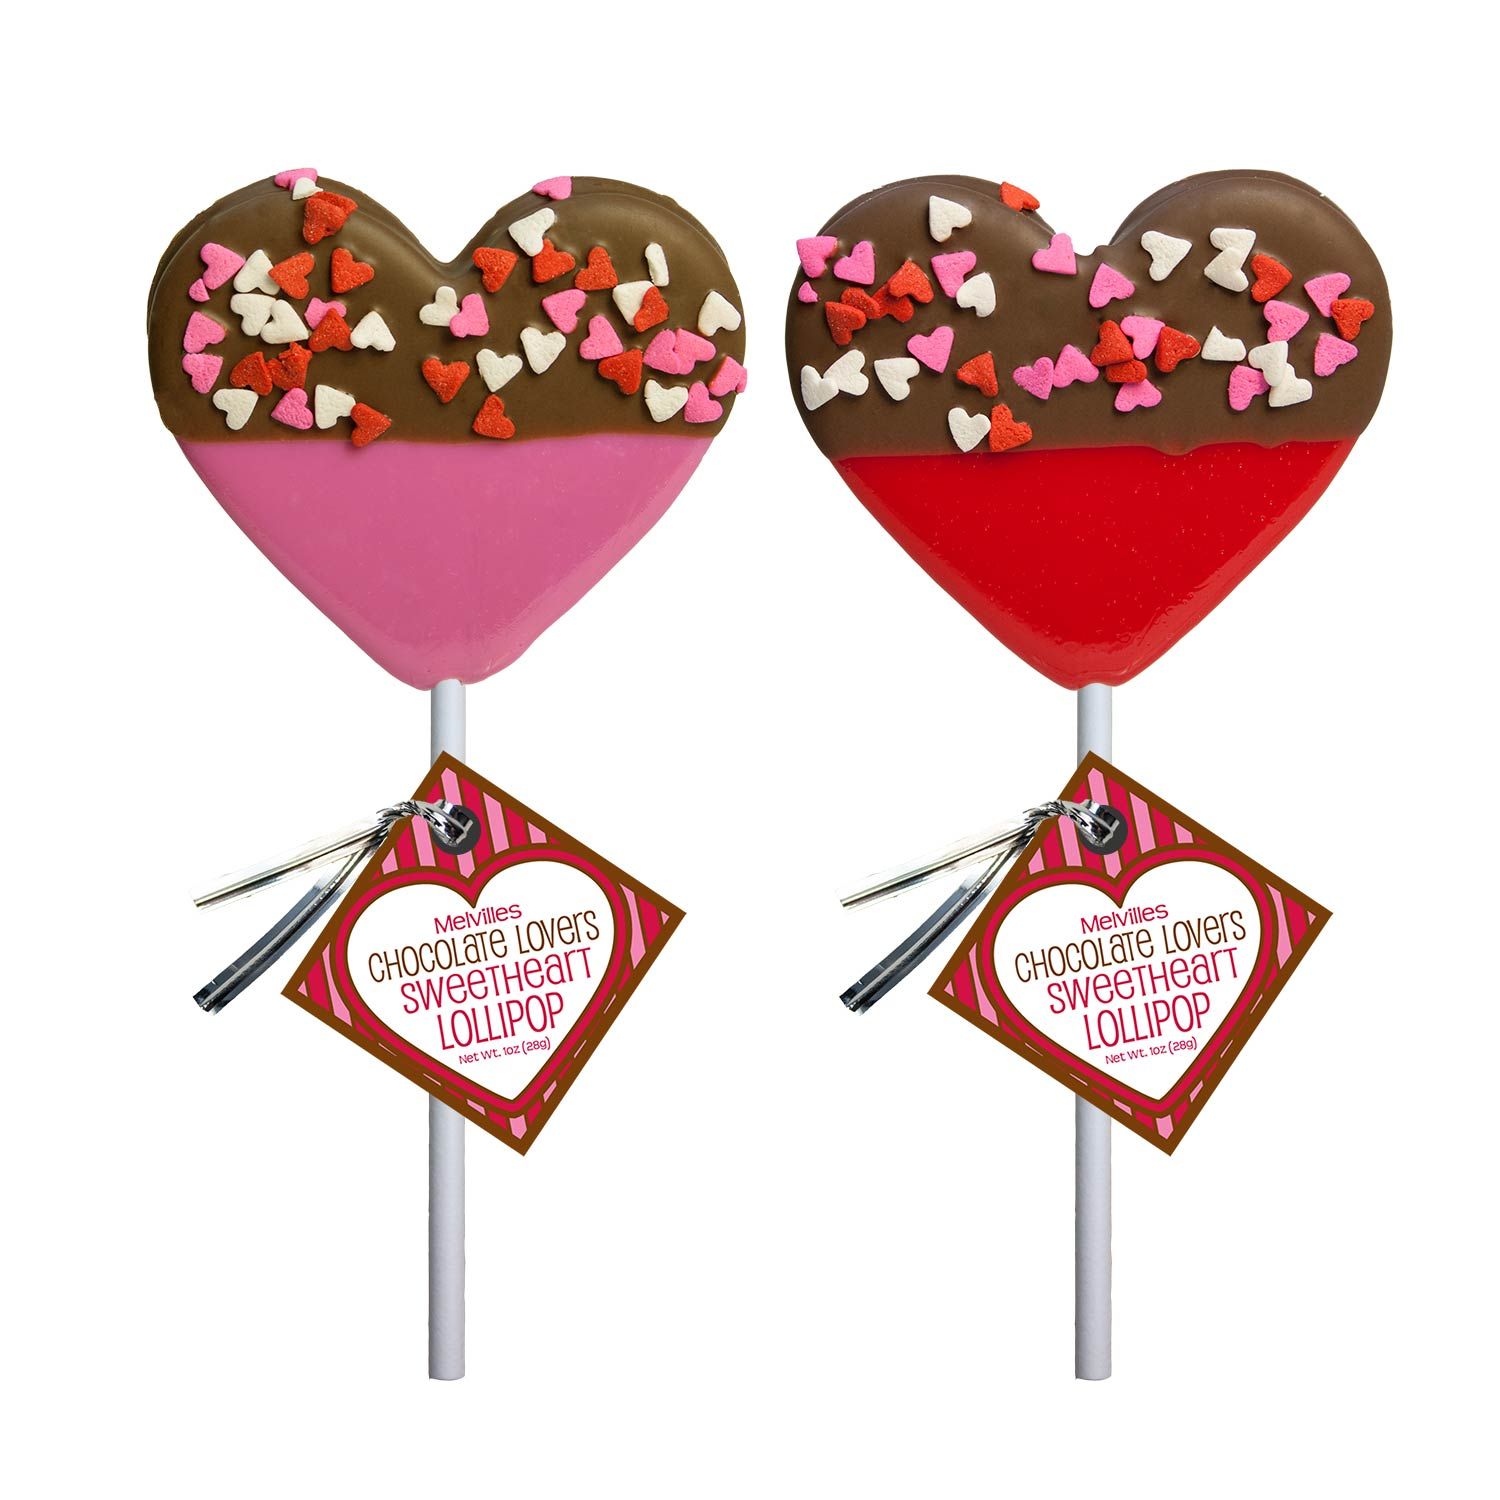 Chocolate clipart chocolate lollipop. Dipped confetti heart lollipops